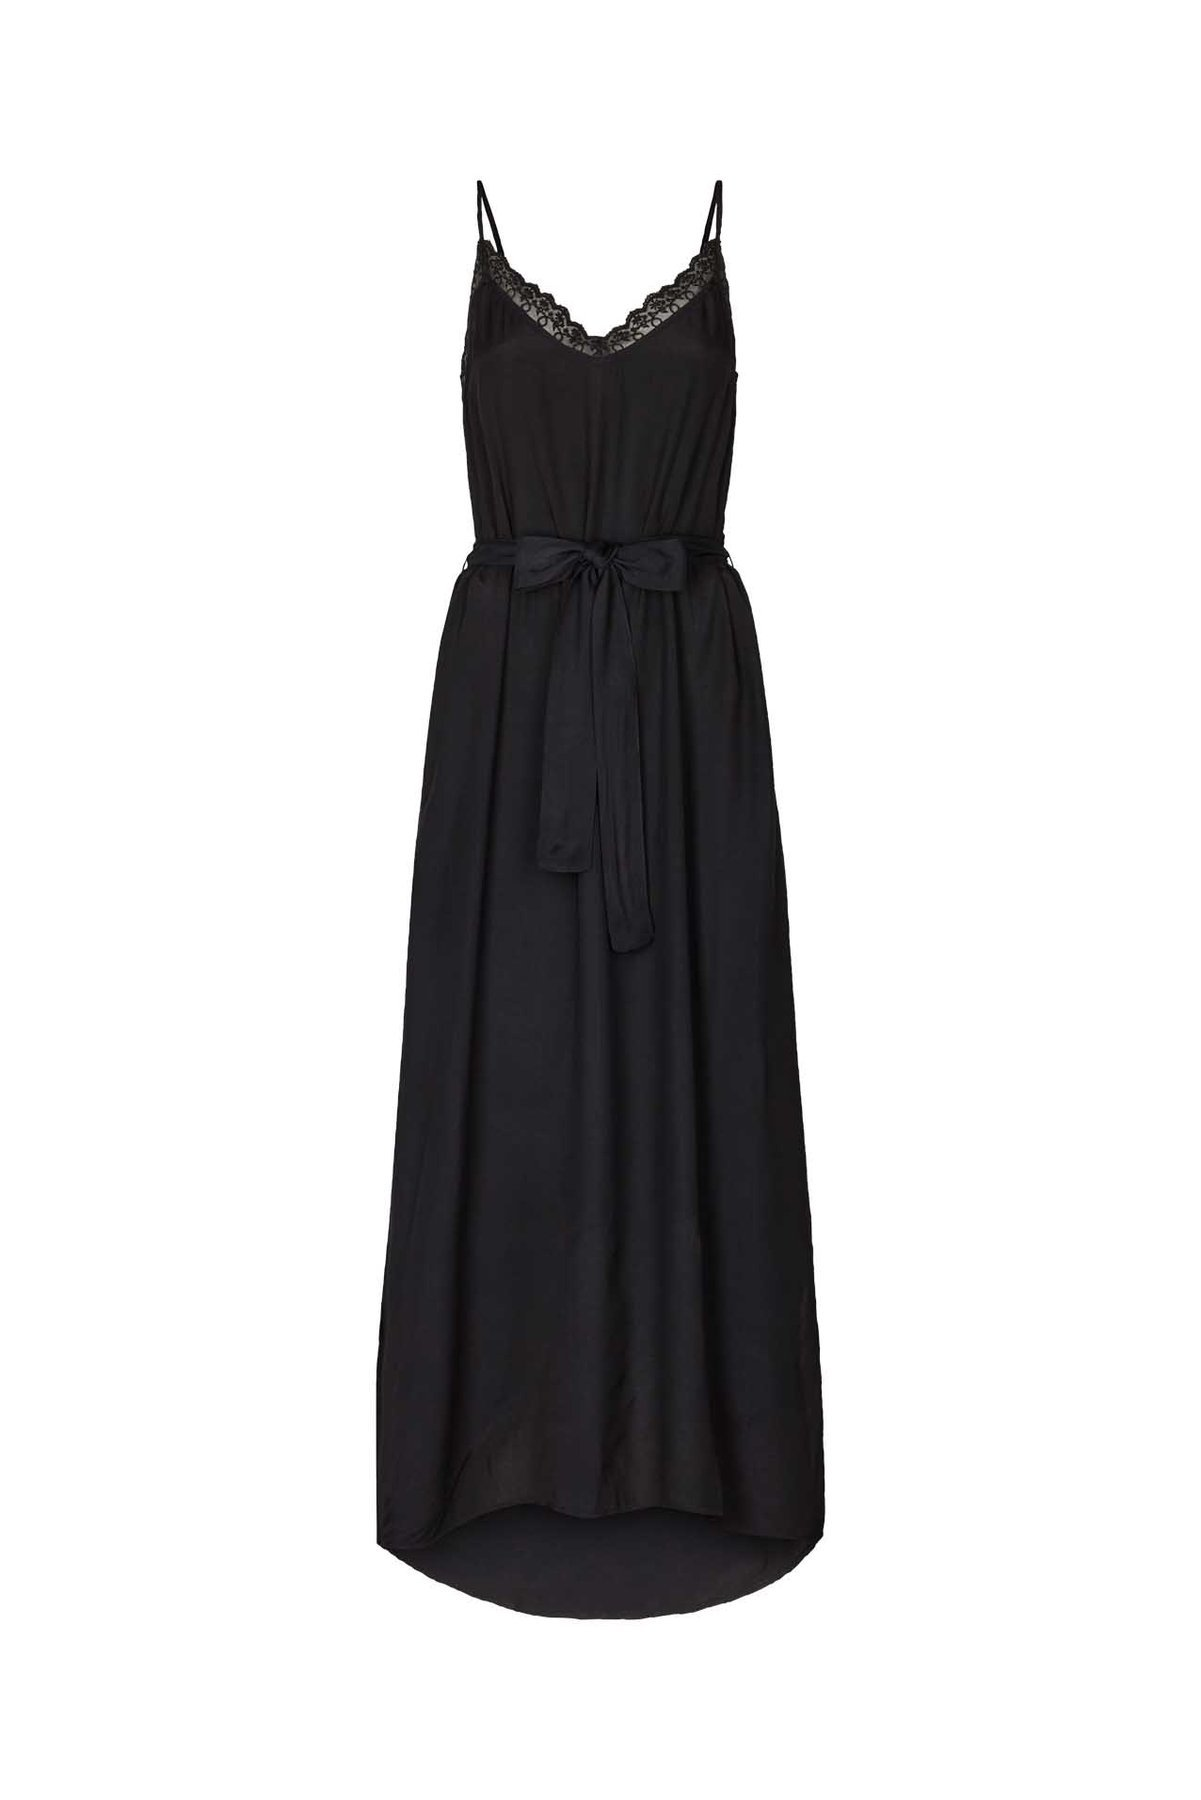 Lollys Laundry Beatrice Strap Dress 18 washed black